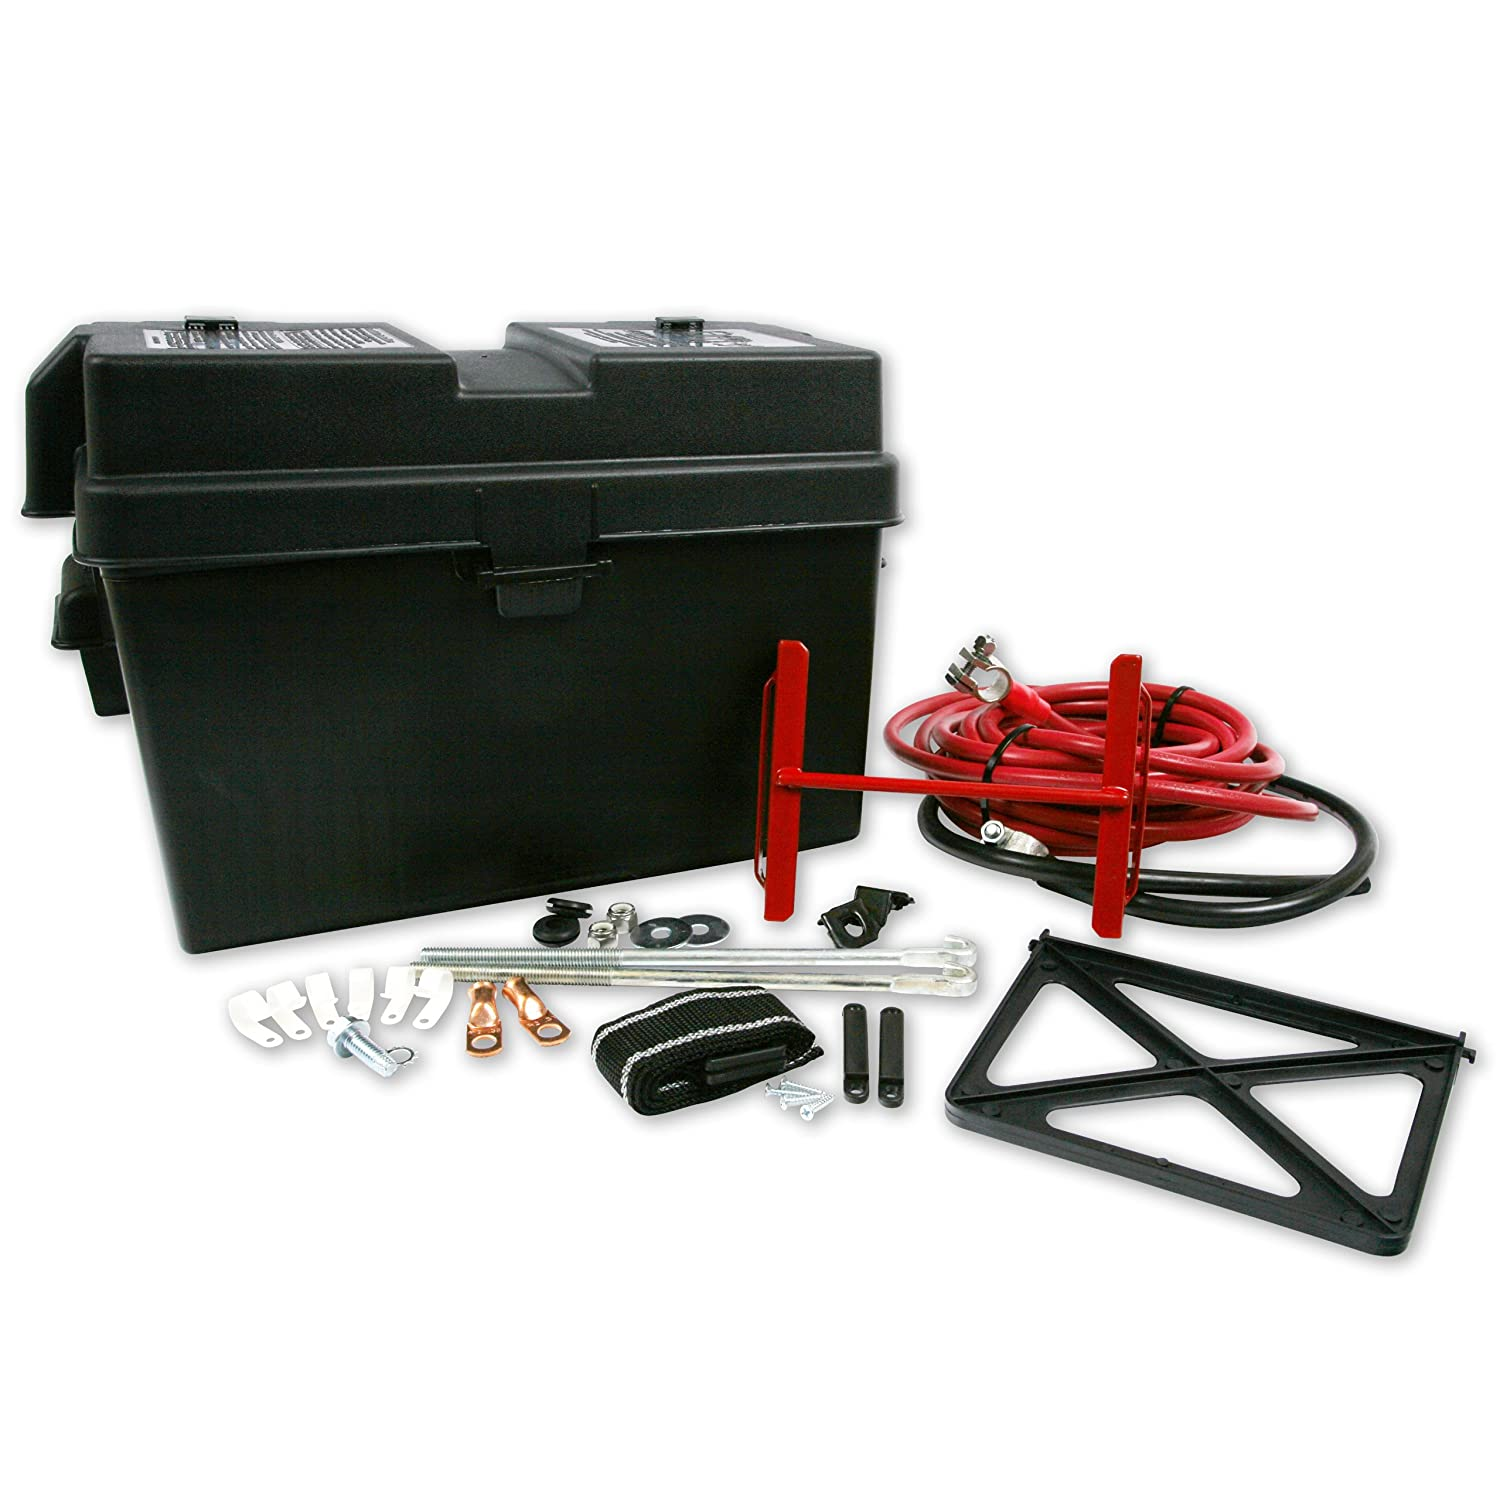 battery relocation wiring diagram of lungs and diaphragm s13 kit get free image about